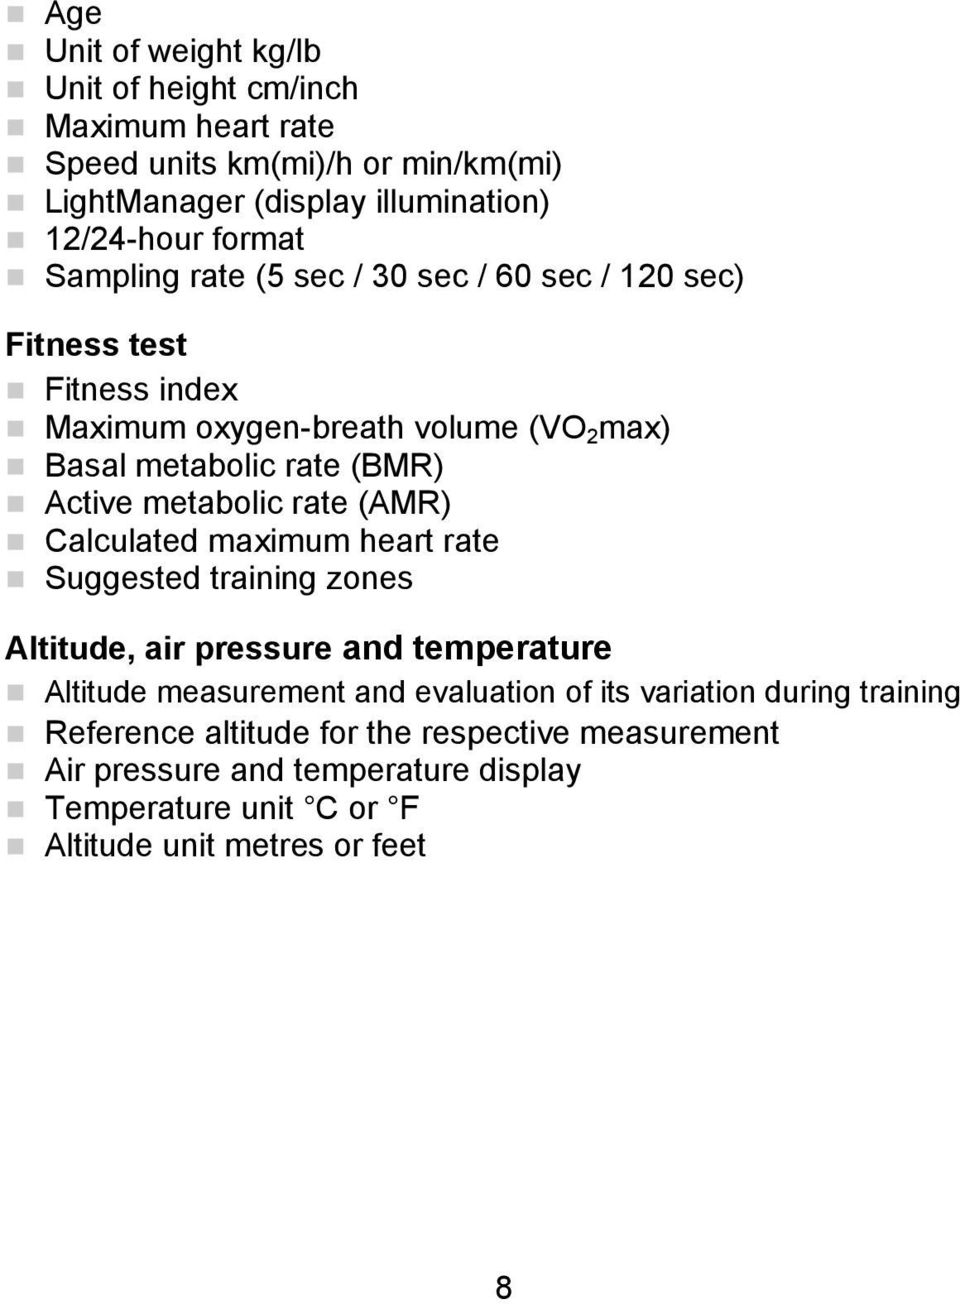 metabolic rate (AMR) Calculated maximum heart rate Suggested training zones Altitude, air pressure and temperature Altitude measurement and evaluation of its